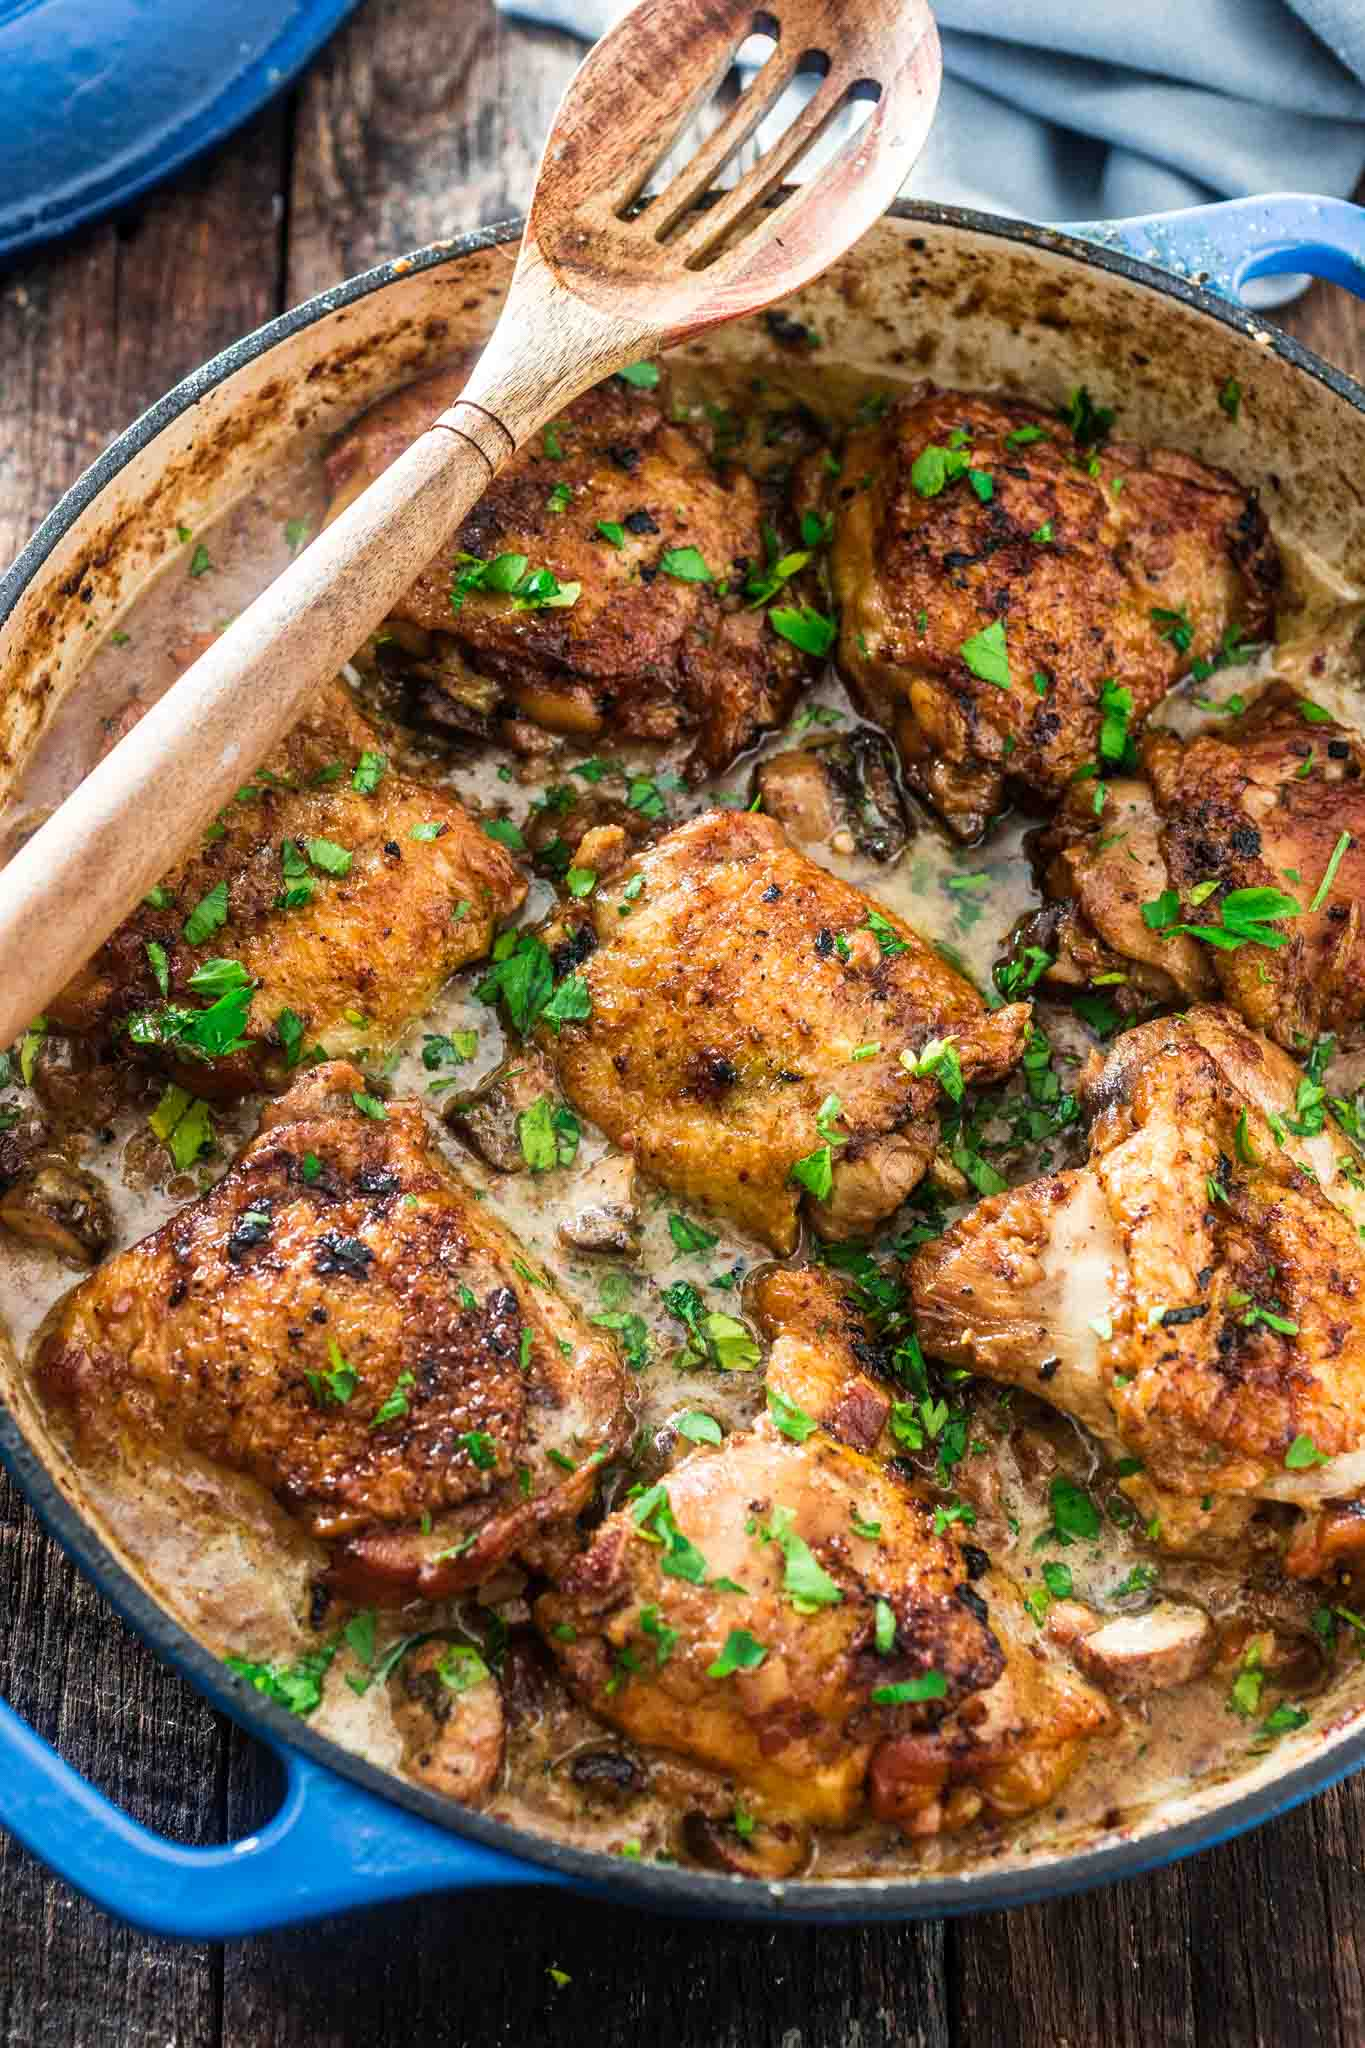 Coq au Riesling (Chicken Thighs Braised in White Wine) | www.oliviascuisine.com | A creamy twist on the classic Coq au Vin. Chicken thighs, bacon and mushrooms are braised in an off-dry Riesling and heavy cream is added at the end to make it even more delicious! Oh, and it's all made in one pot! (Sponsored by @theseekerwines)